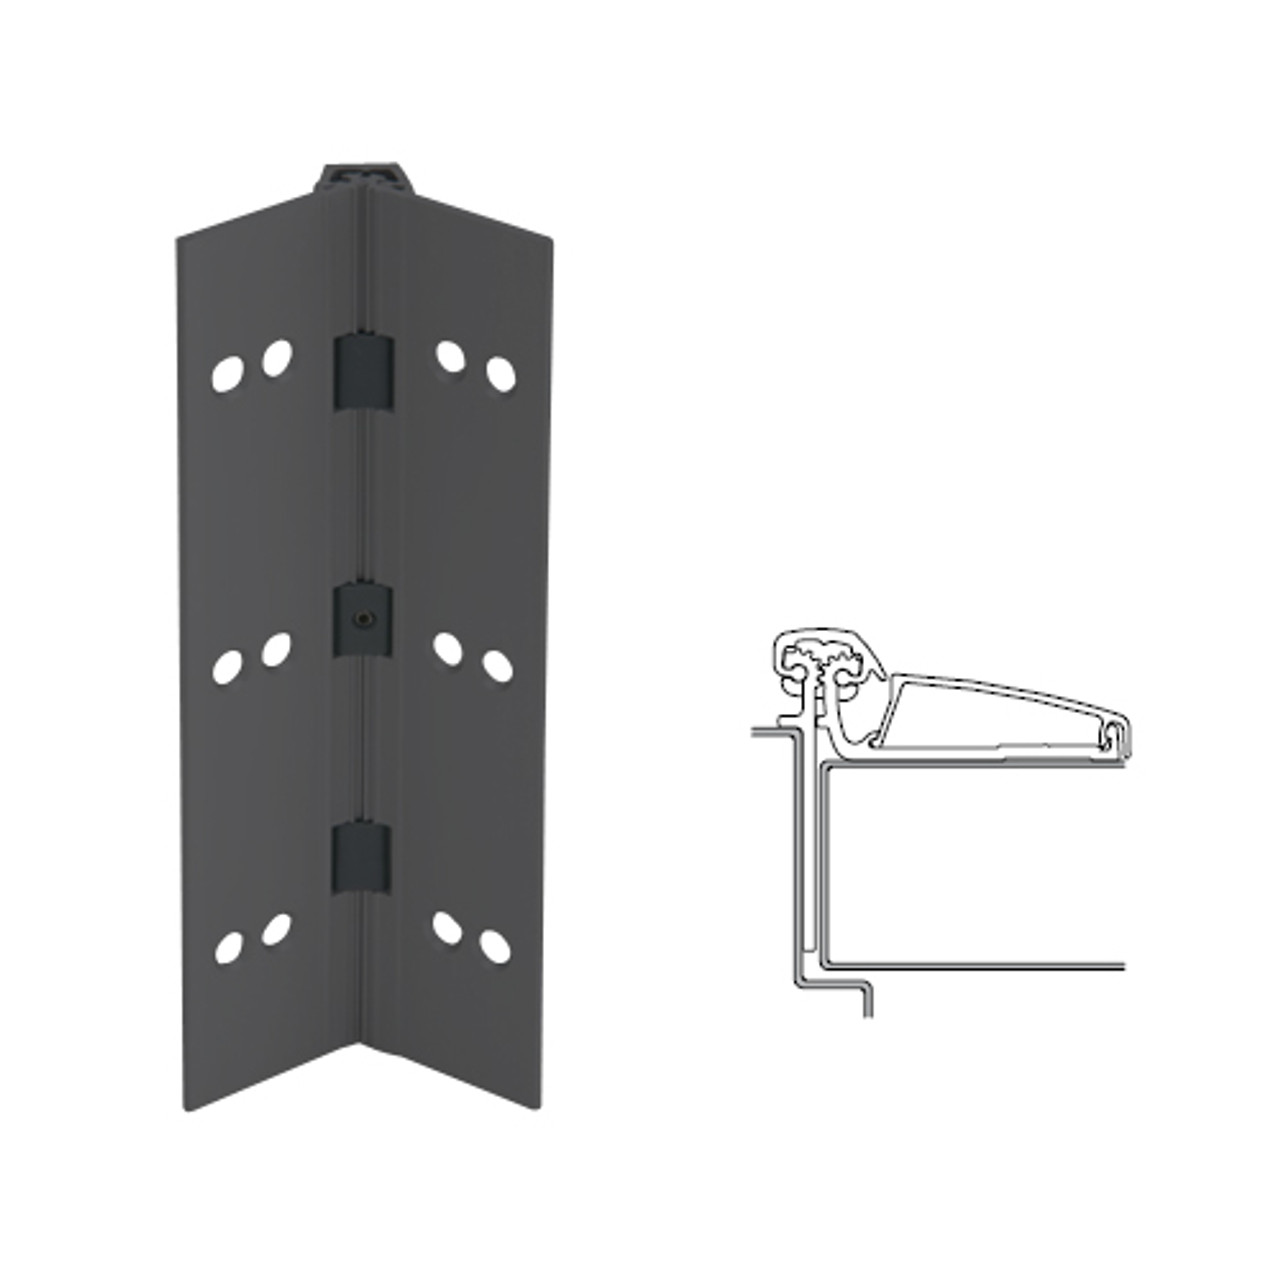 046XY-315AN-120-WD IVES Adjustable Half Surface Continuous Geared Hinges with Wood Screws in Anodized Black